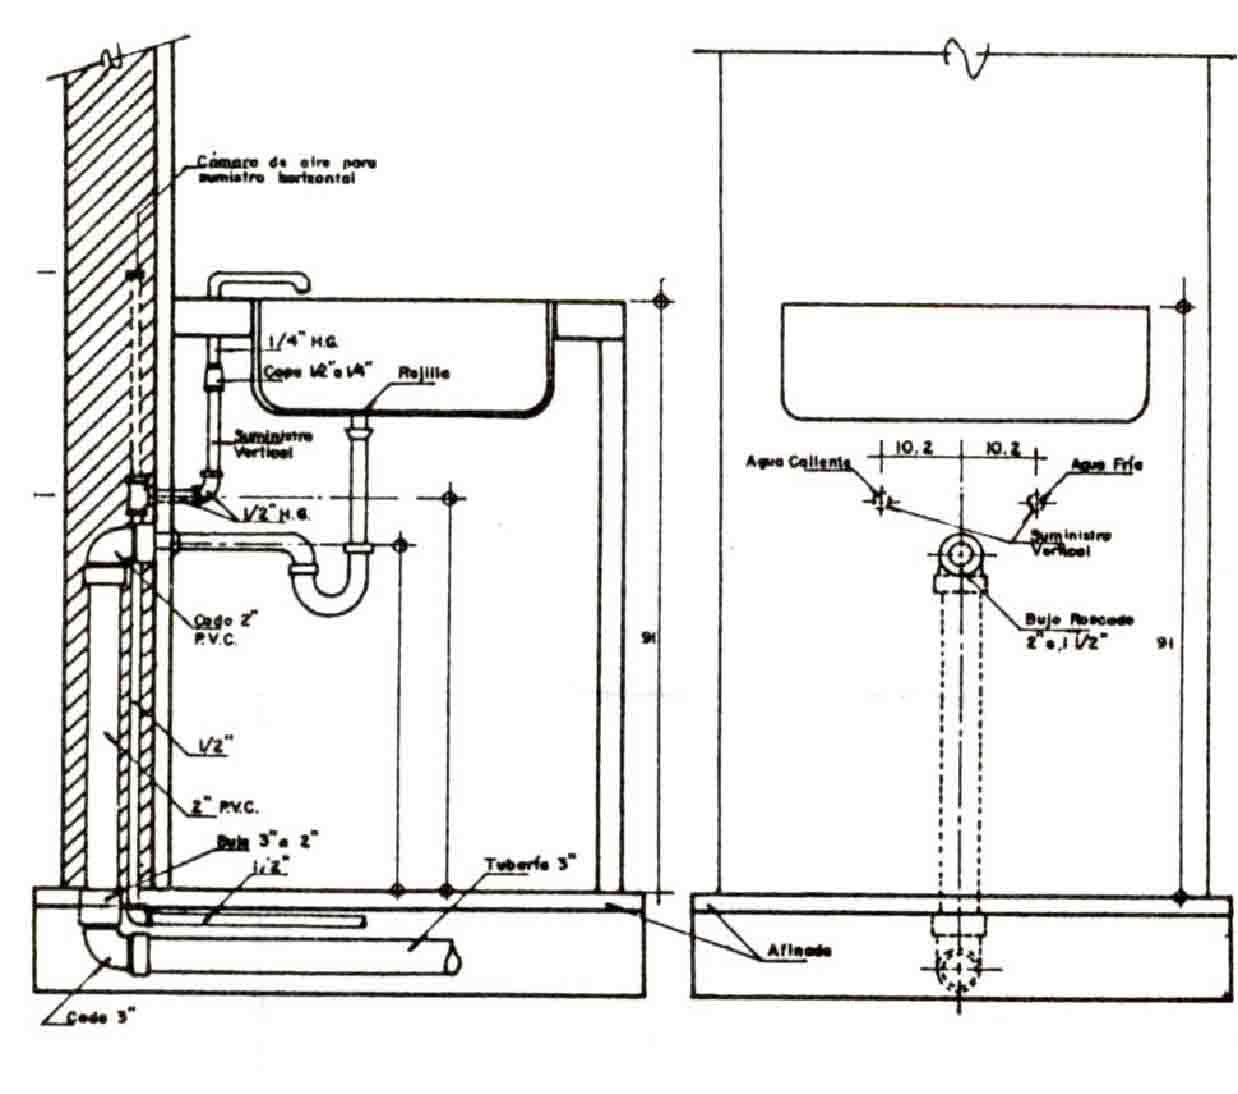 Instalaciones Sanitarias Domiciliarias Buscar Con Google How To Install A Toilet Plumbing Diagram Help Drawing Installation Basement Renovations